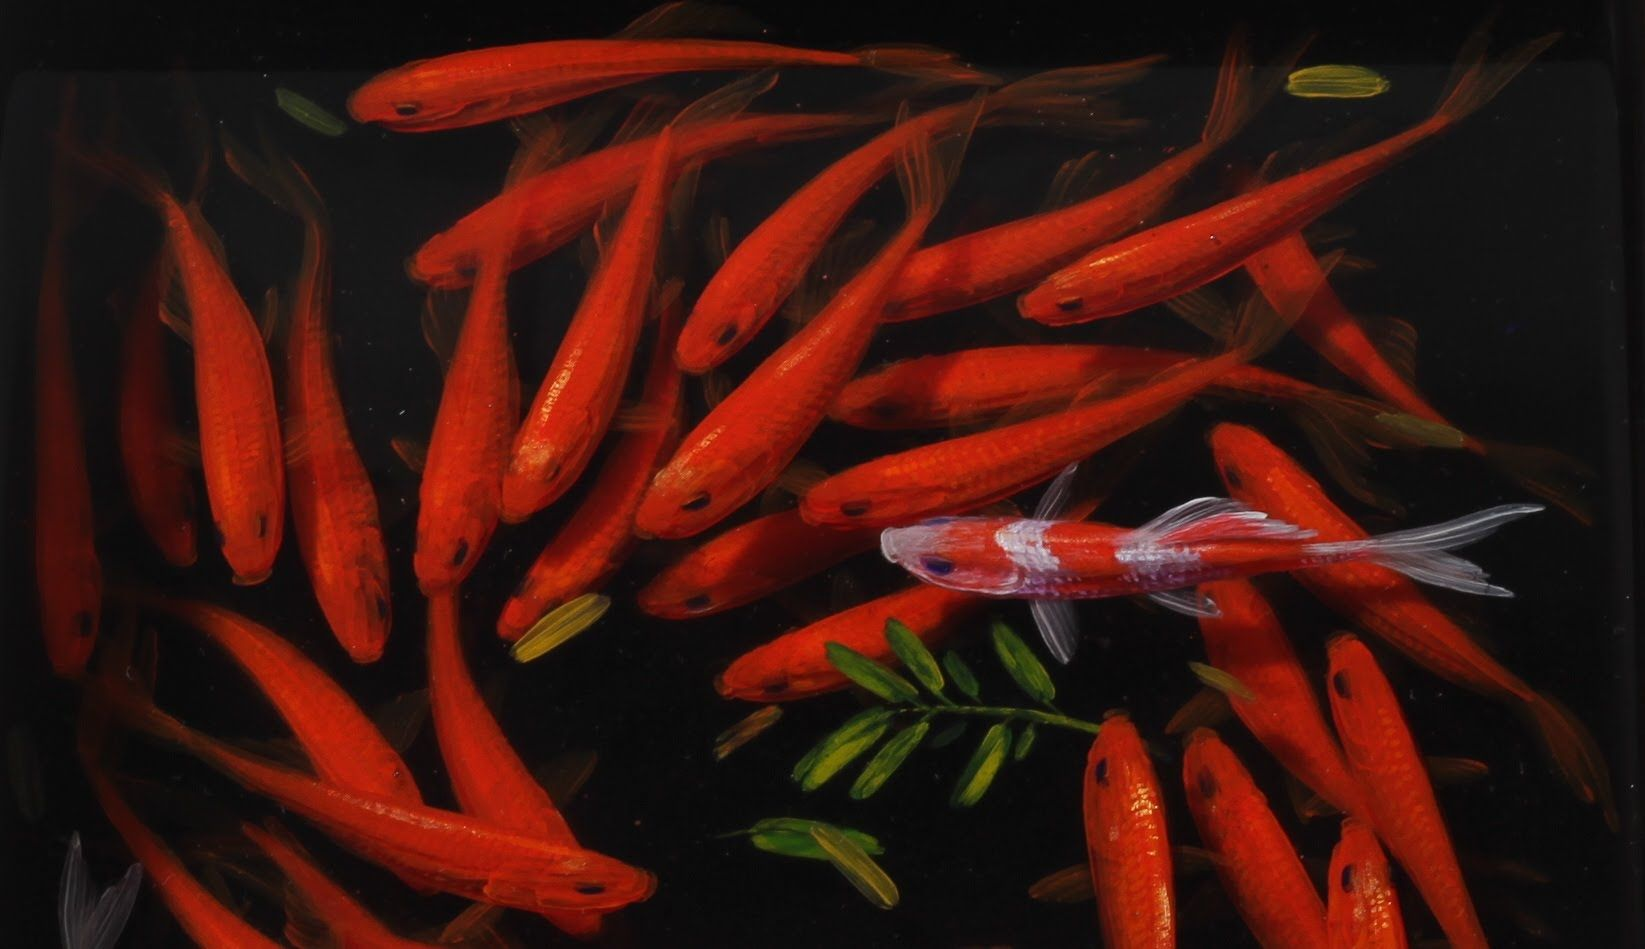 This Is A Painting Of Fish In Layers Of Resin Whoah A R T S Y - Incredible 3d goldfish drawings using resin